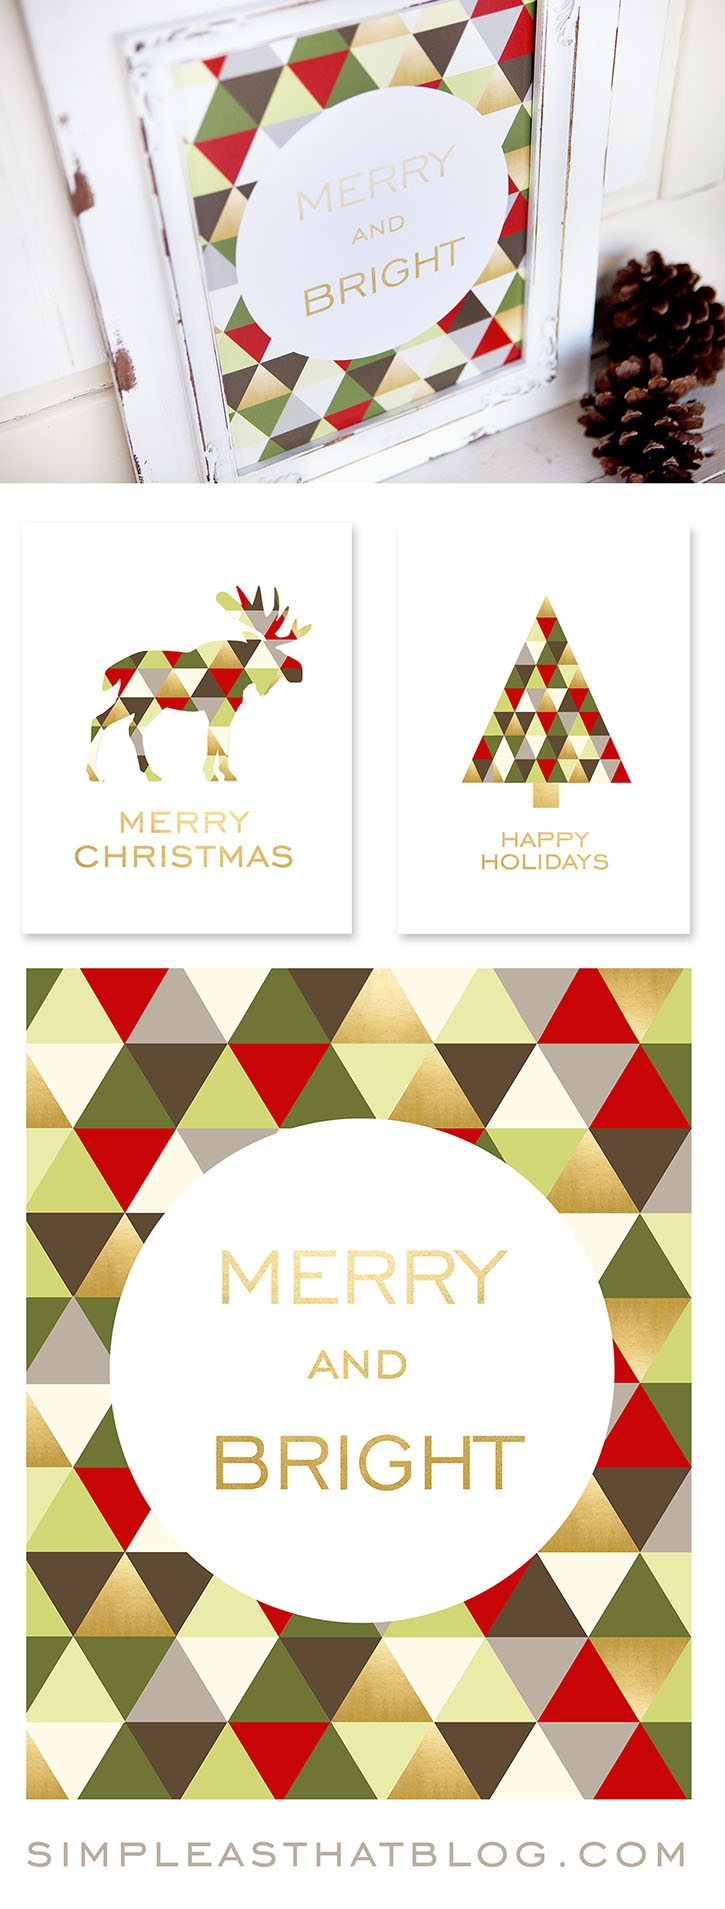 merry bright christmas printables for framing